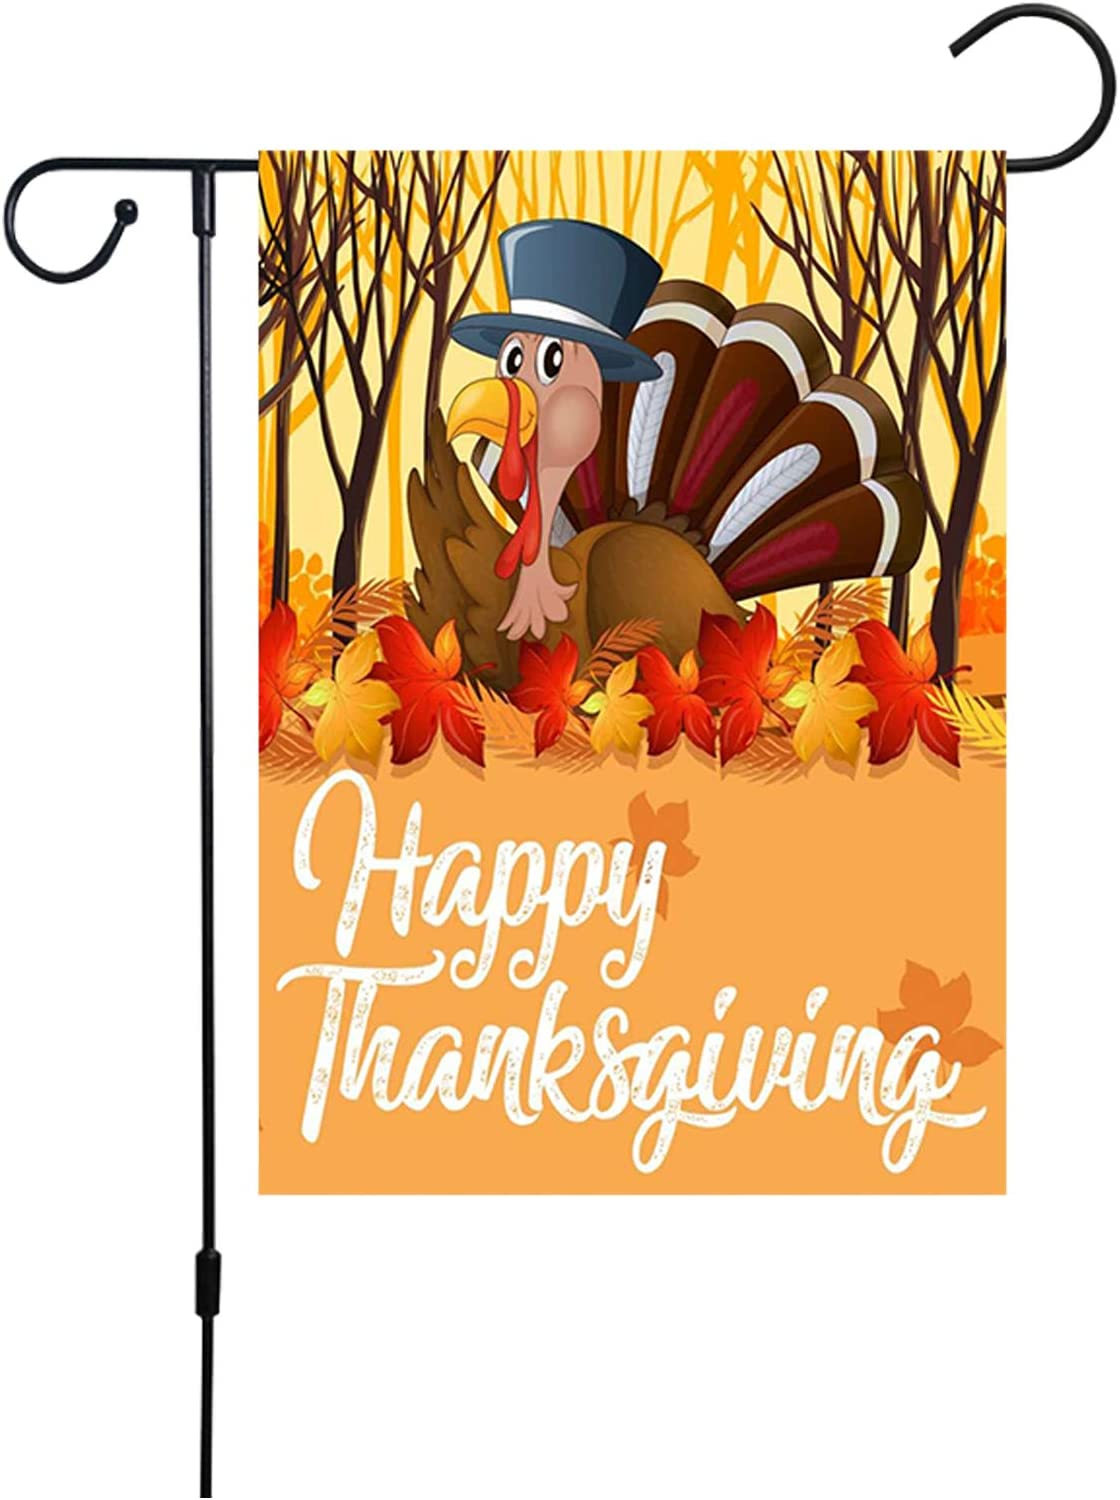 Doicuik Thanksgiving Turkey Garden Flag - Turkey Harvest Fall Decorations Double Sided Burlap House Flags for Home Decor Indoor Outdoor 12 x 18 Inch